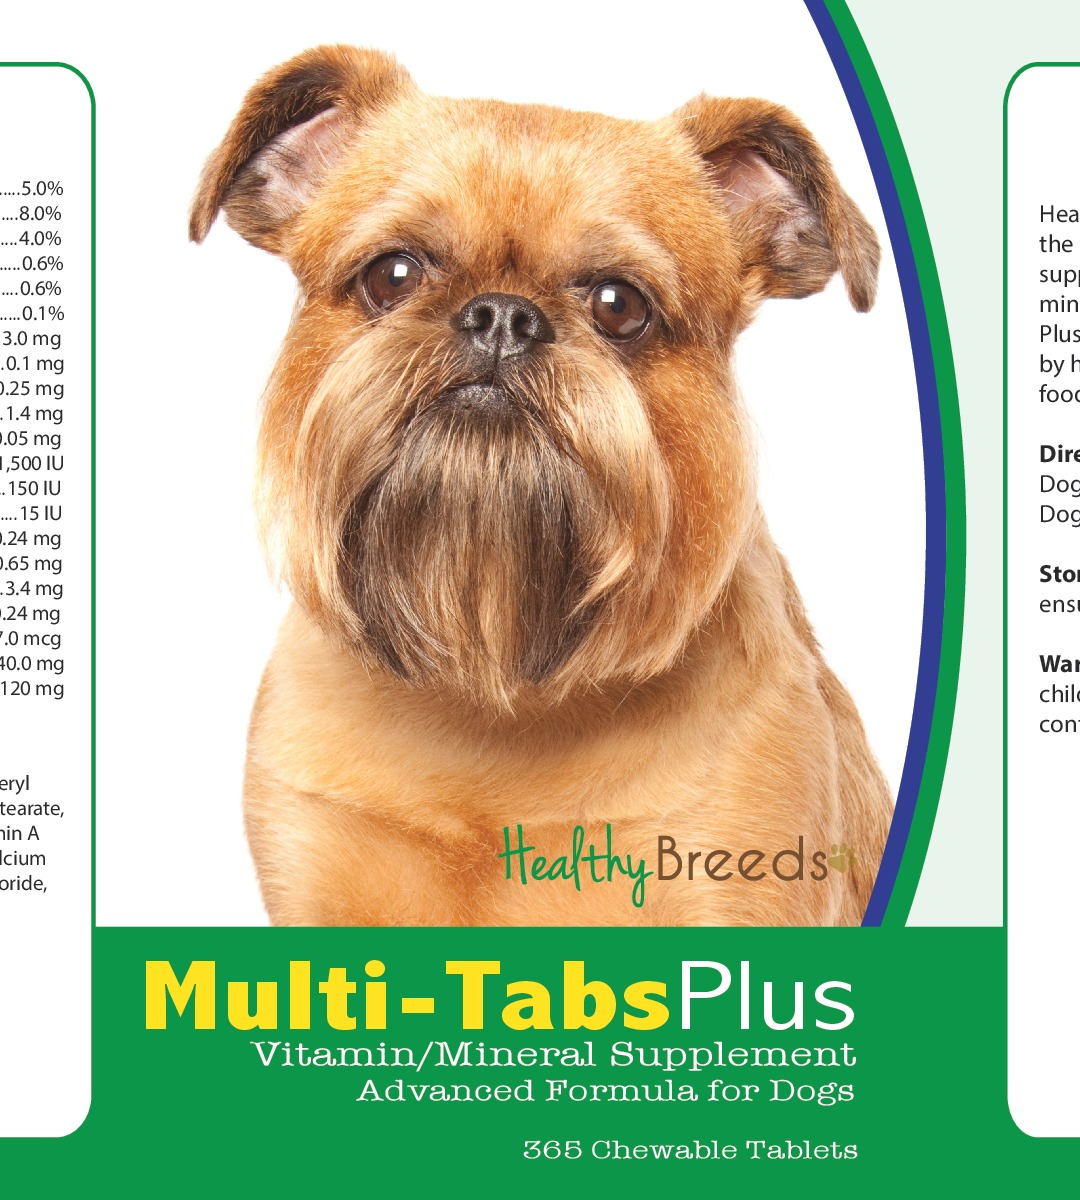 Healthy Breeds 840235122746 Brussels Griffon Multi-Tabs Plus Chewable Tablets - 365 Count